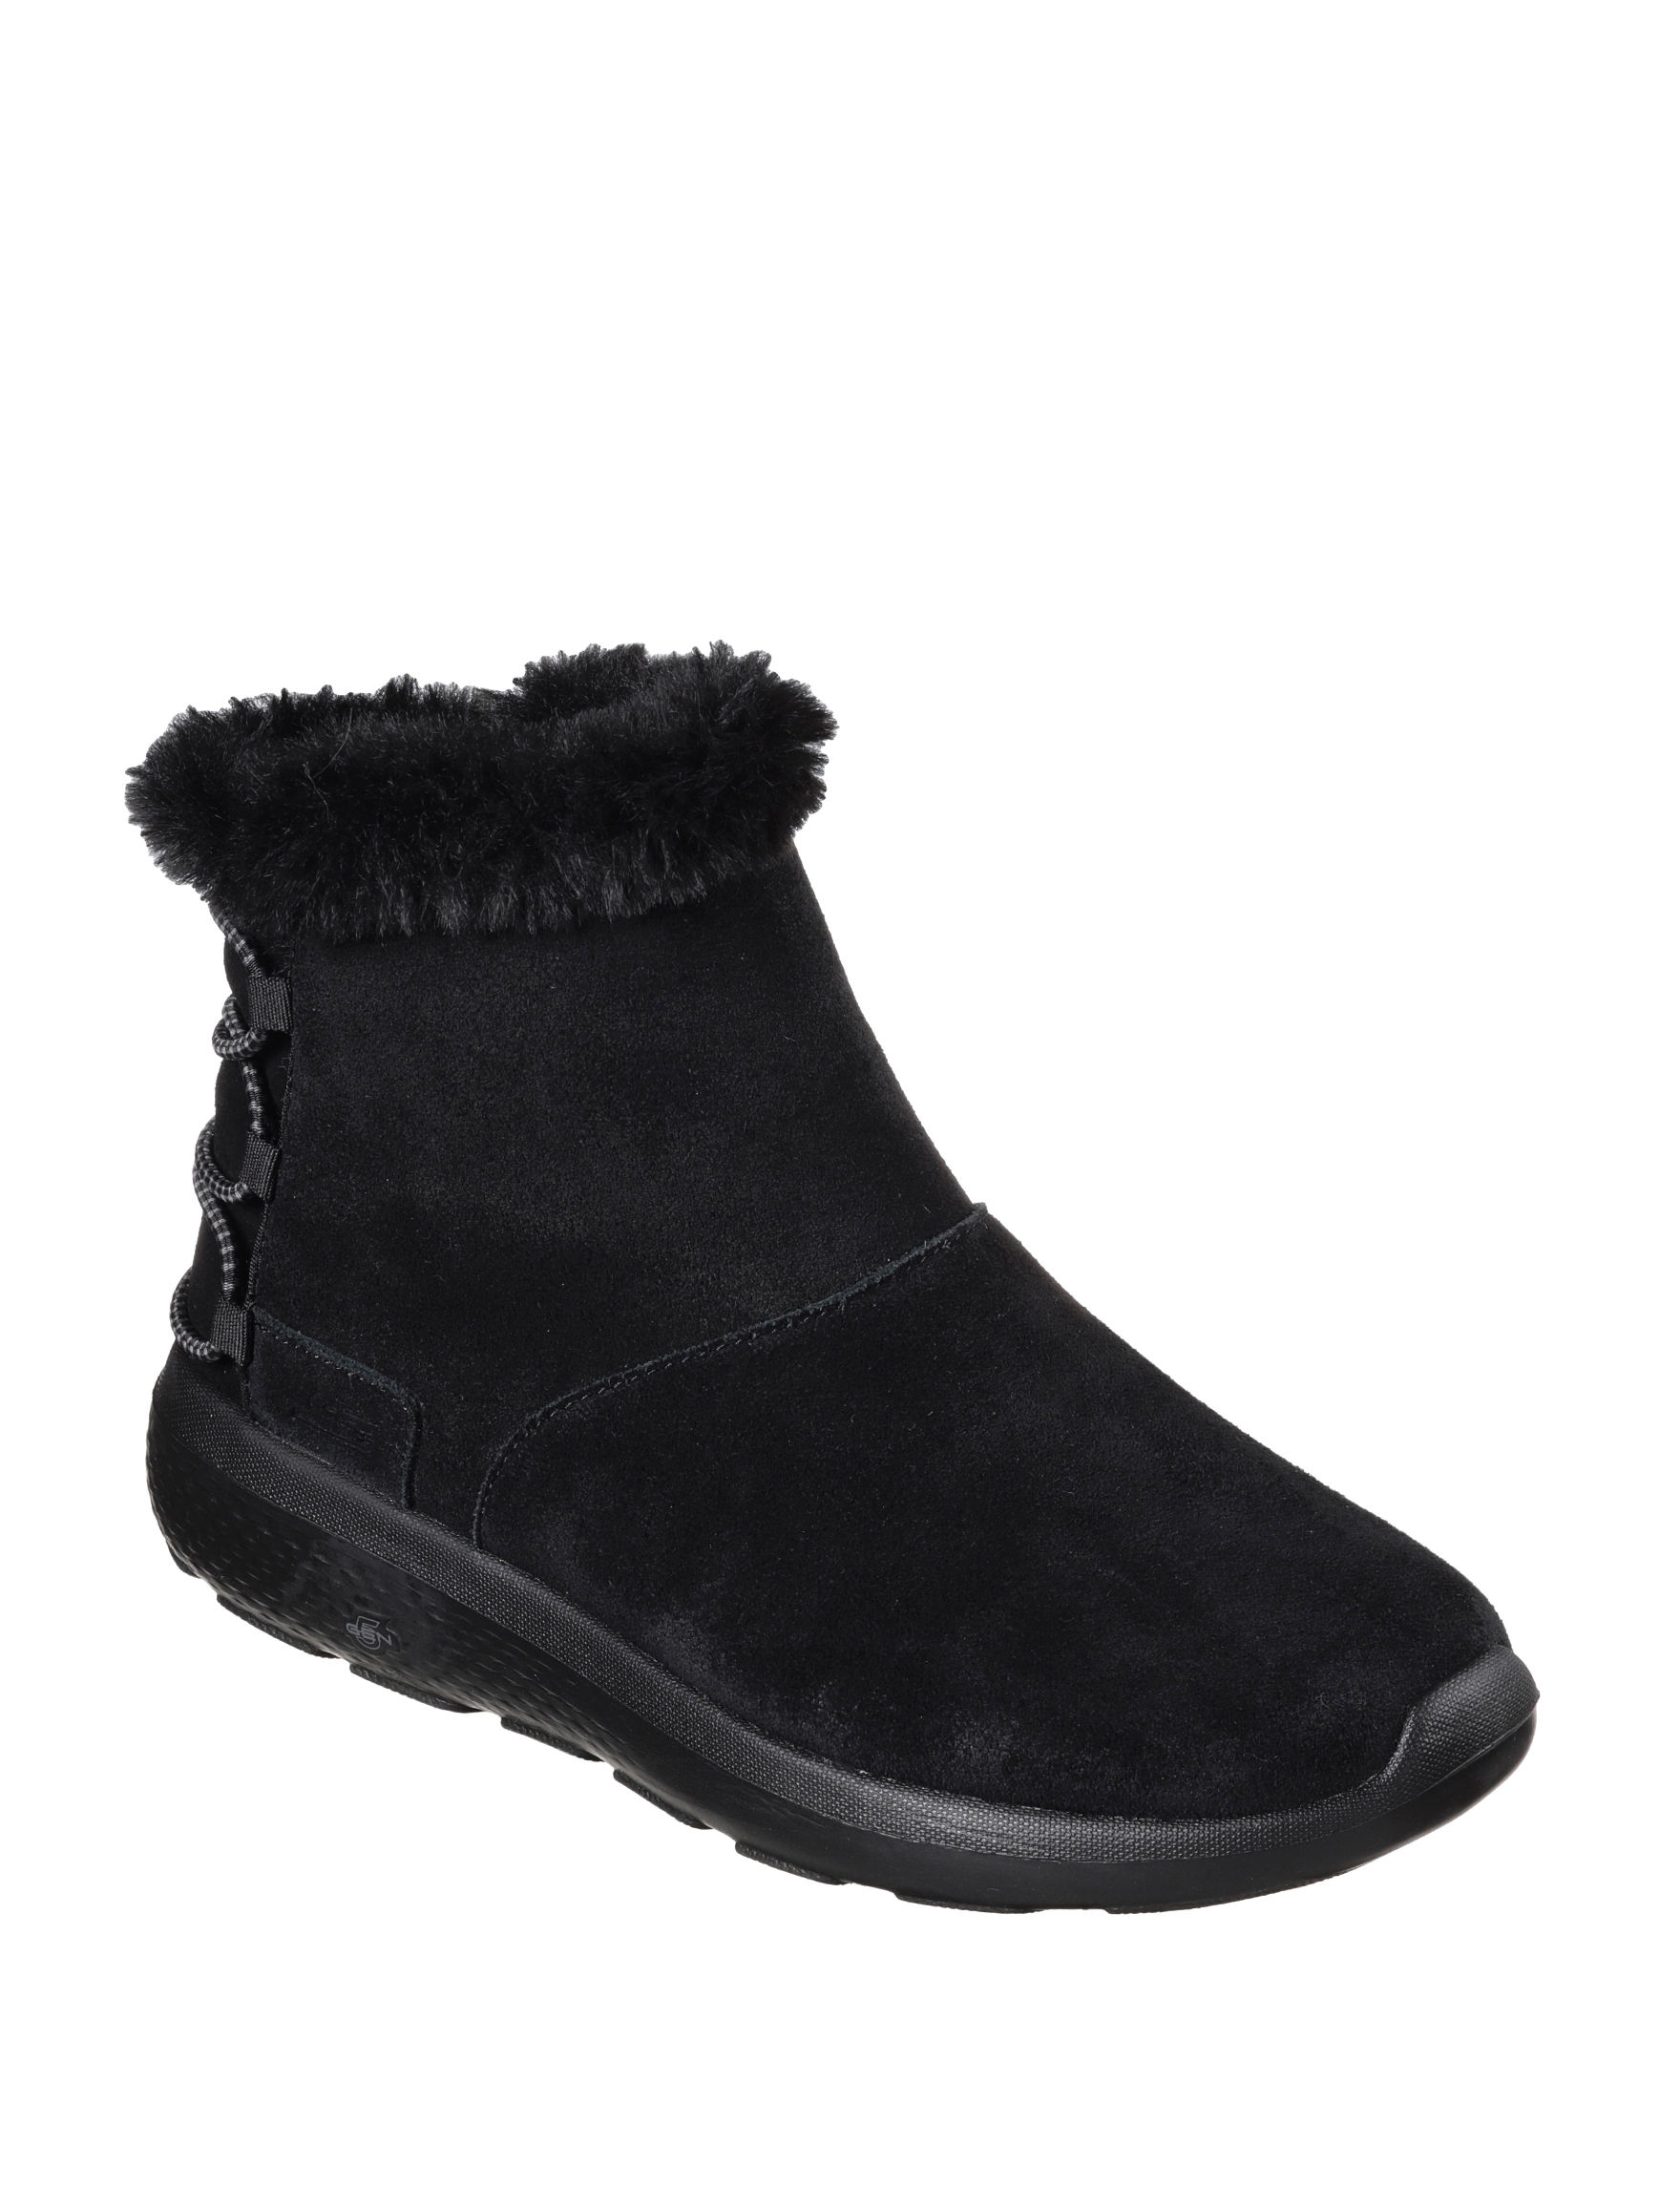 Skechers Black Winter Boots